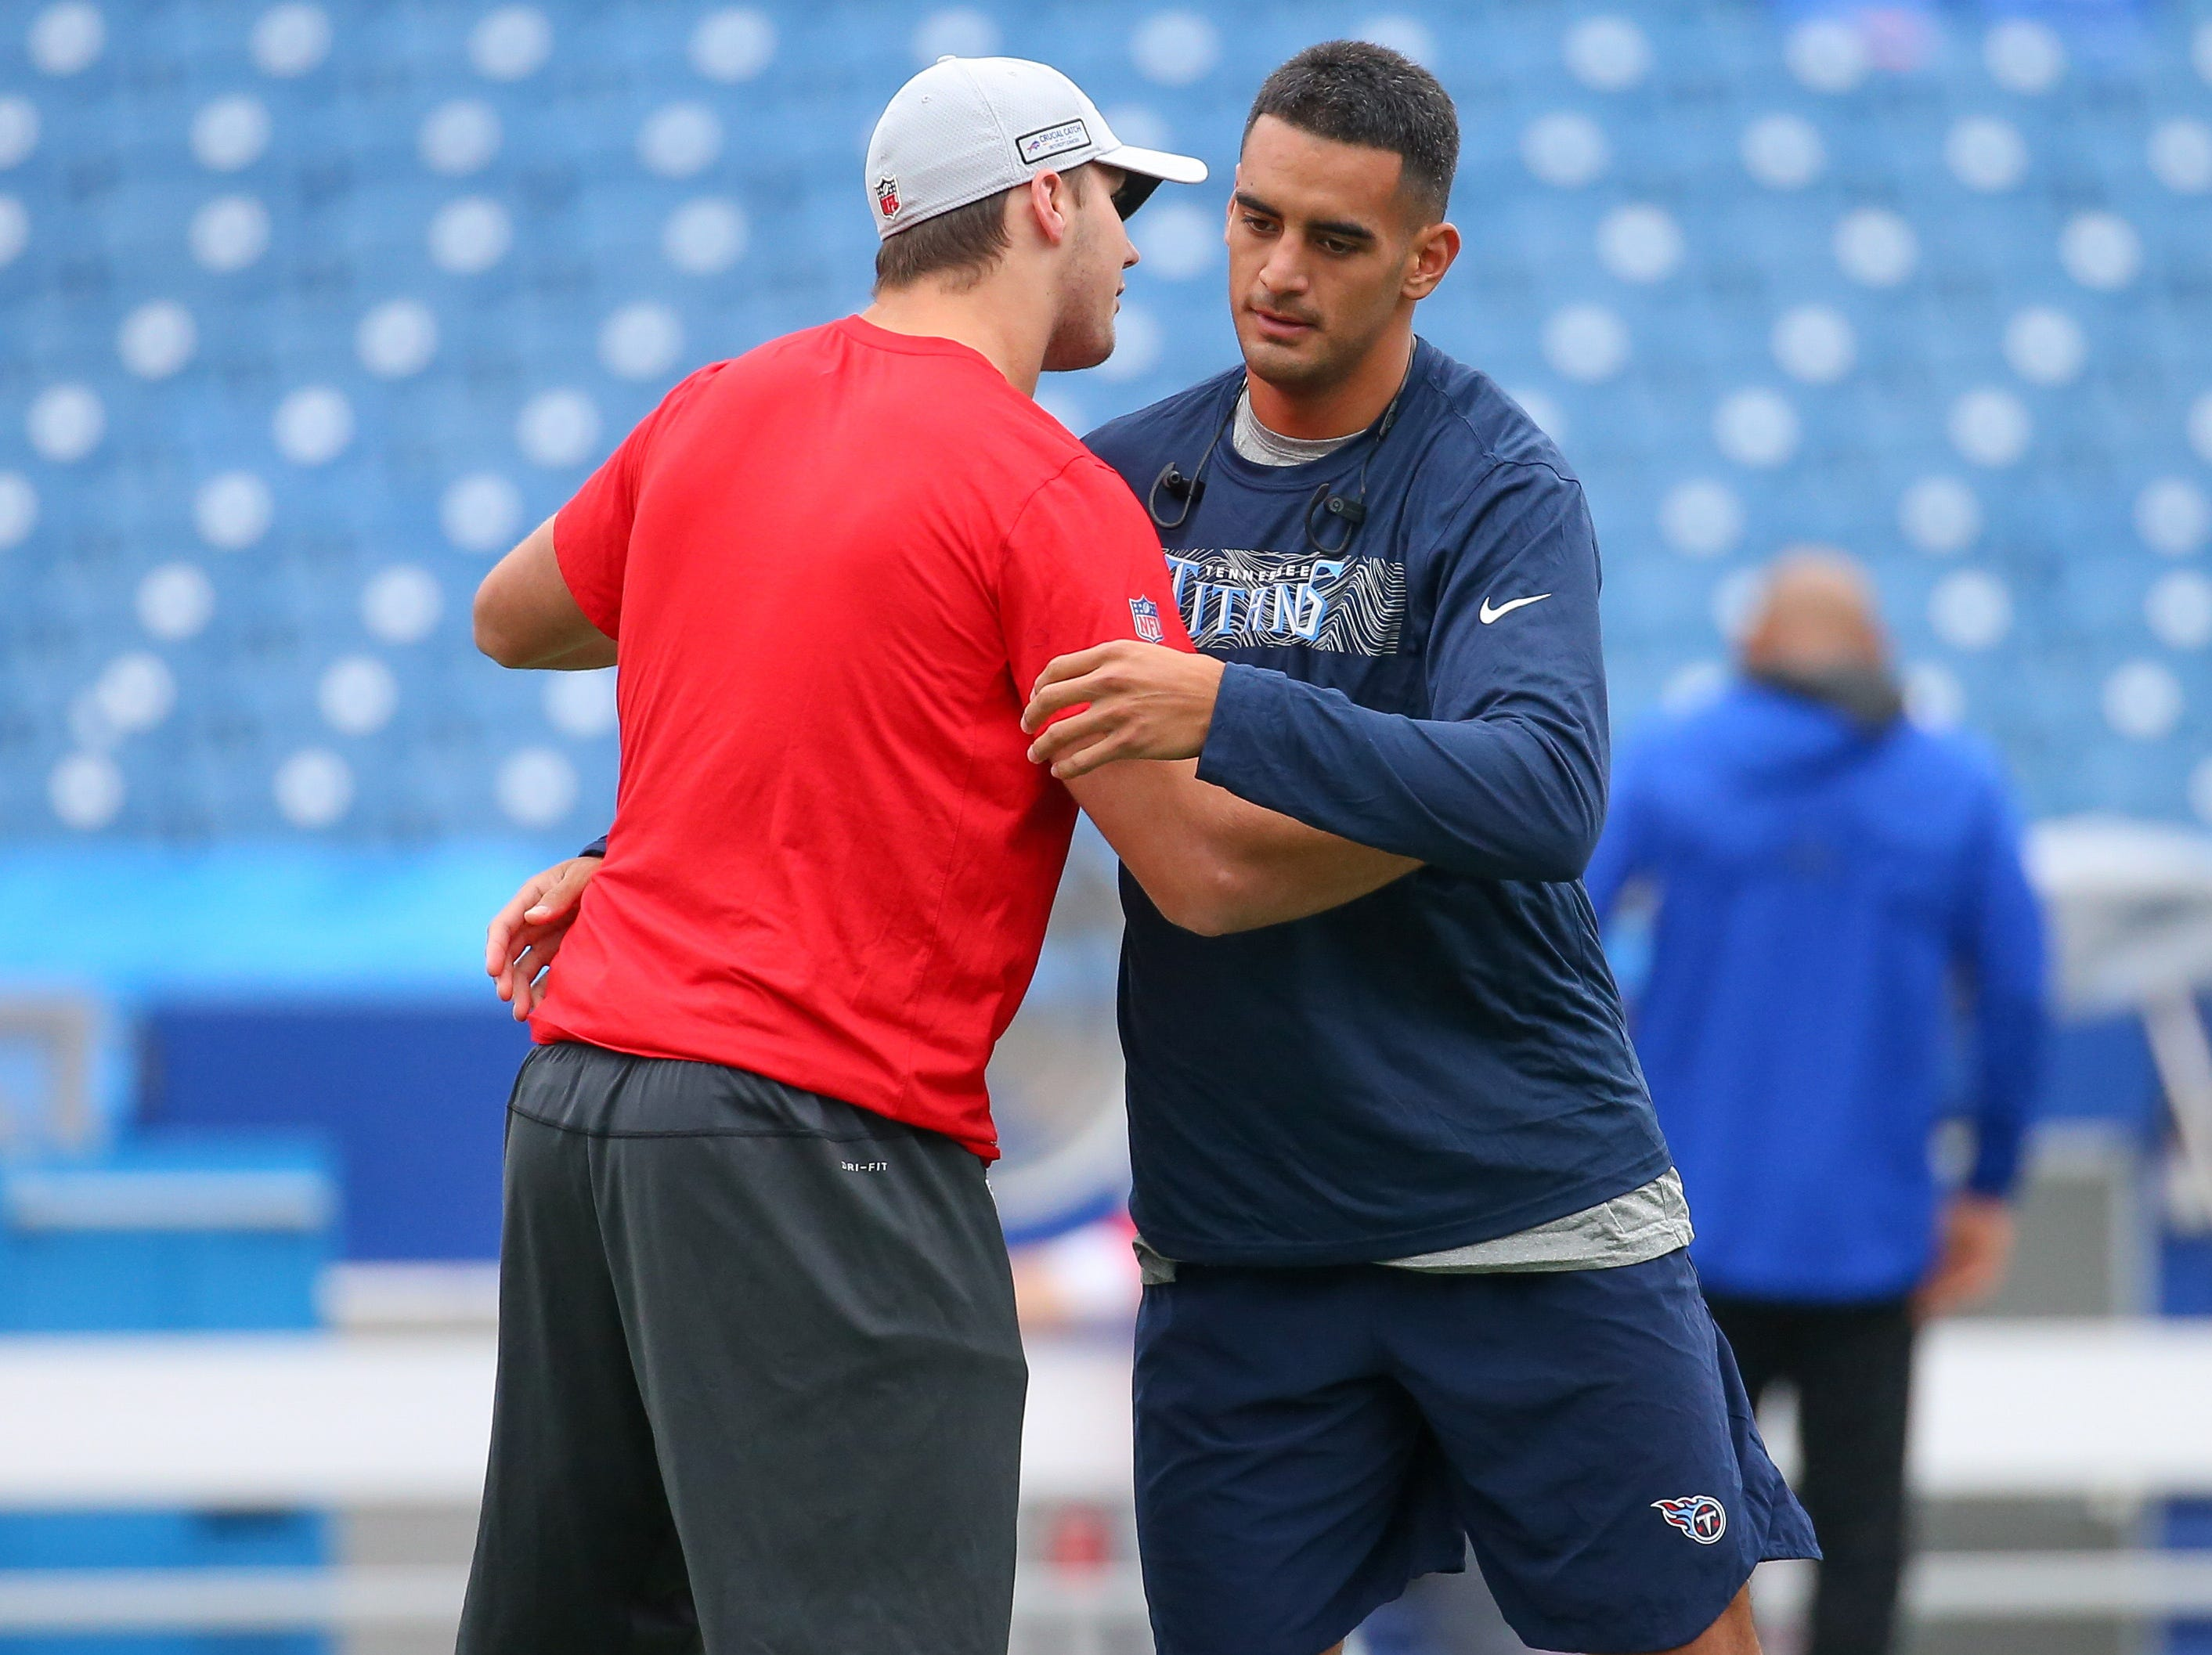 Oct 7, 2018; Orchard Park, NY, USA; Buffalo Bills quarterback Josh Allen (L) and Tennessee Titans quarterback Marcus Mariota (R) meet on the field prior to the game at New Era Field.